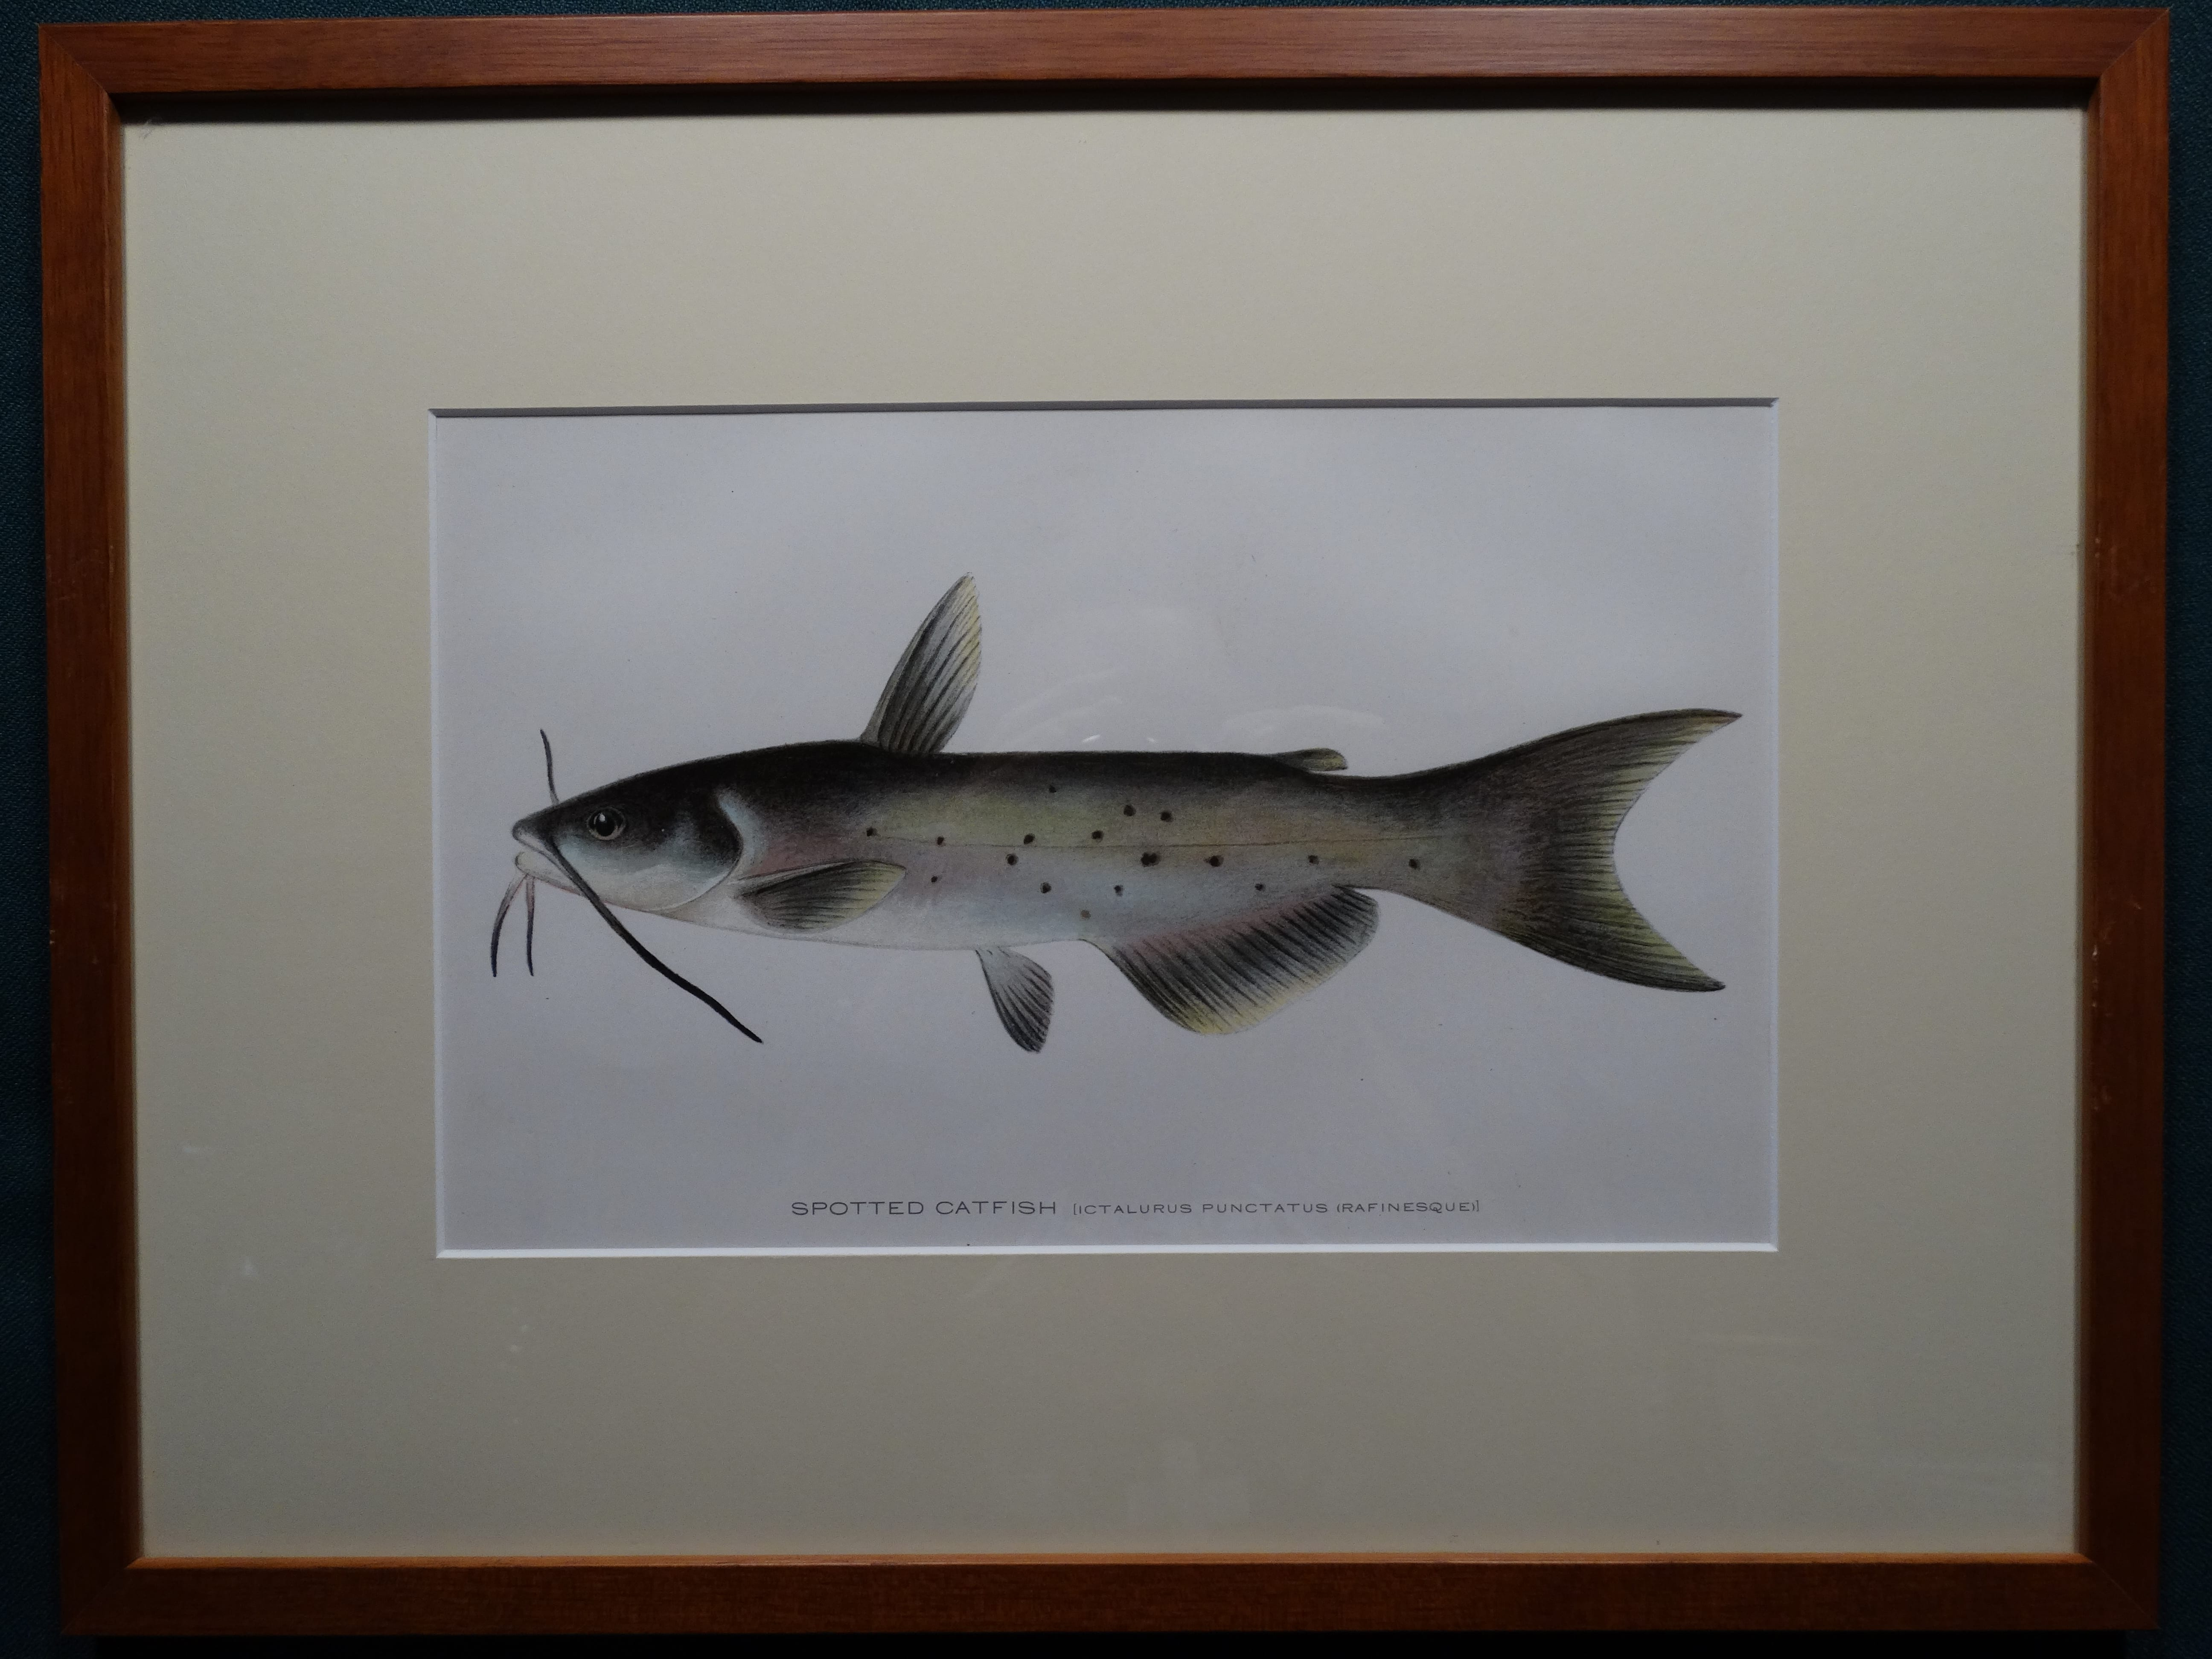 Spotted Catfish by Denton Framed $165. with free US shipping